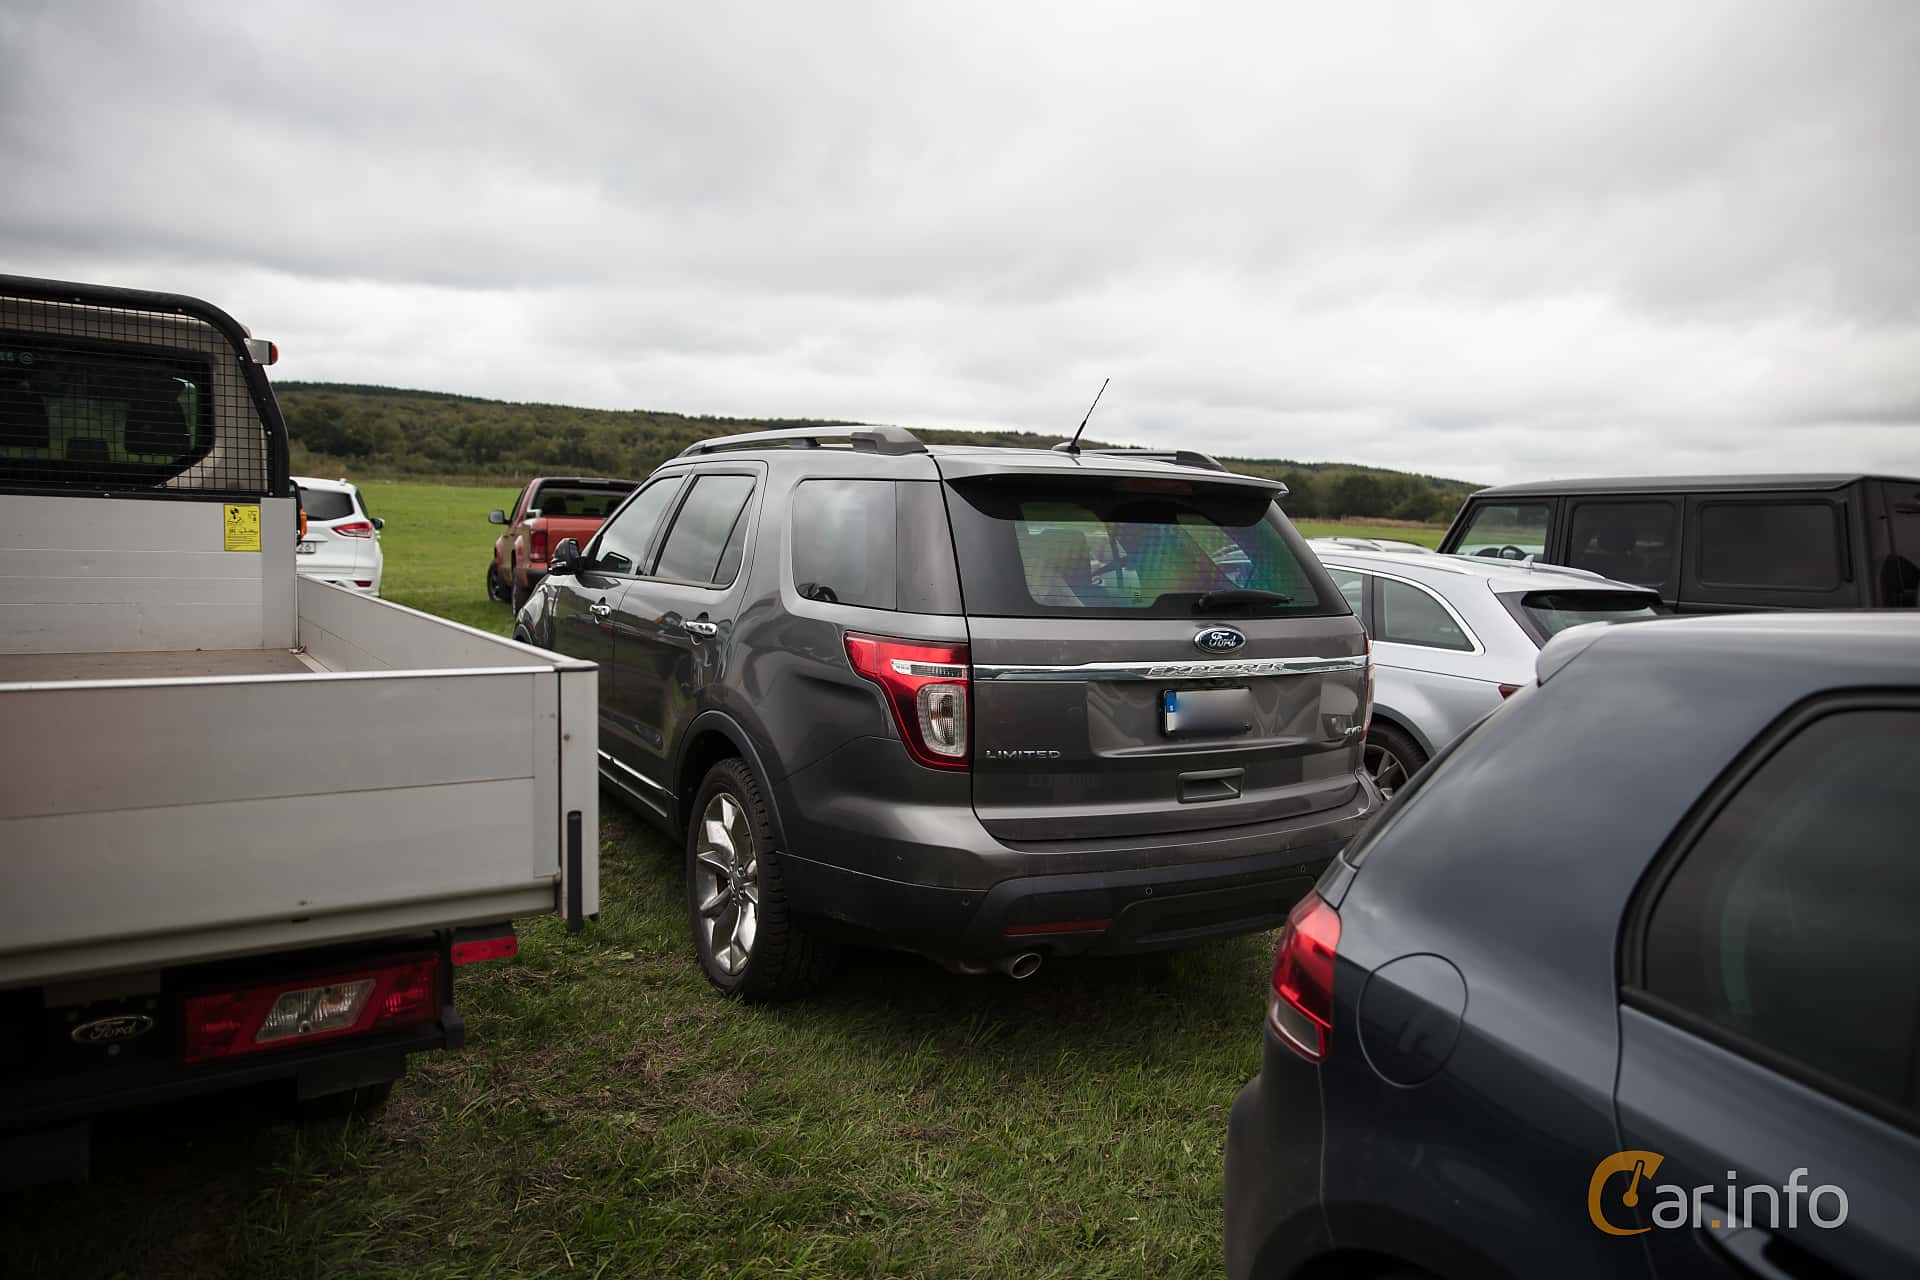 Ford Explorer 3.5 V6 4WD SelectShift, 294hp, 2013 at Autoropa Racing day Knutstorp 2018